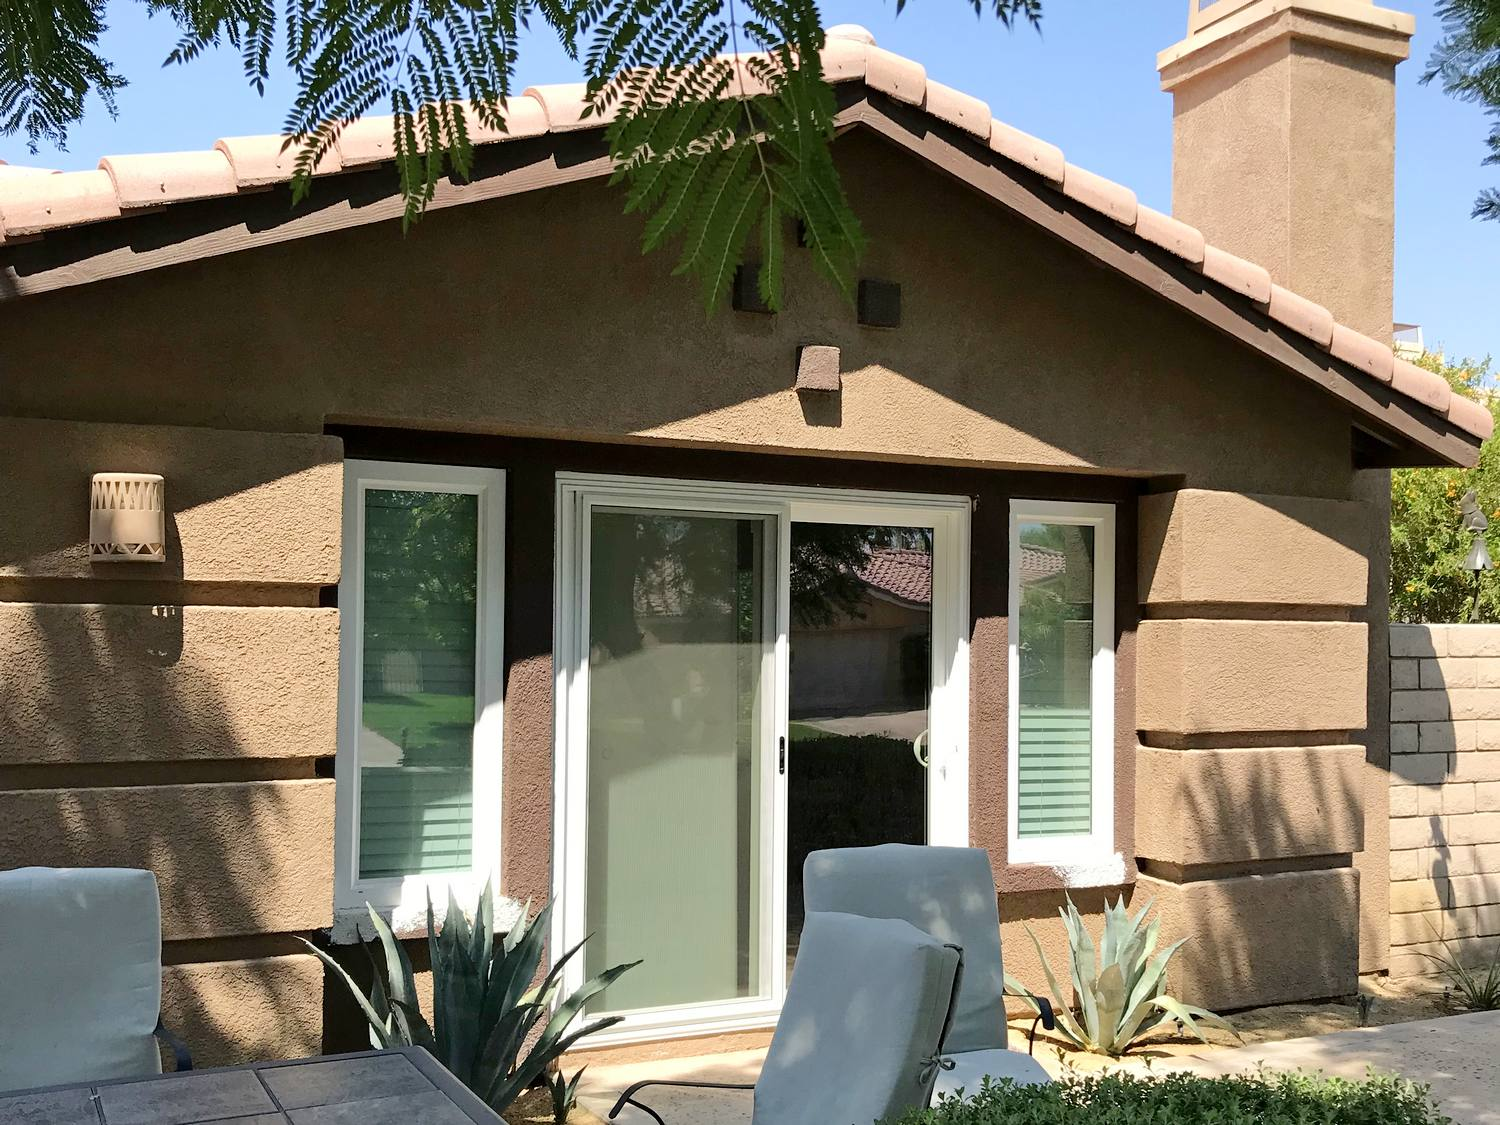 Panoramic Window Replacement in Palm Springs, CA